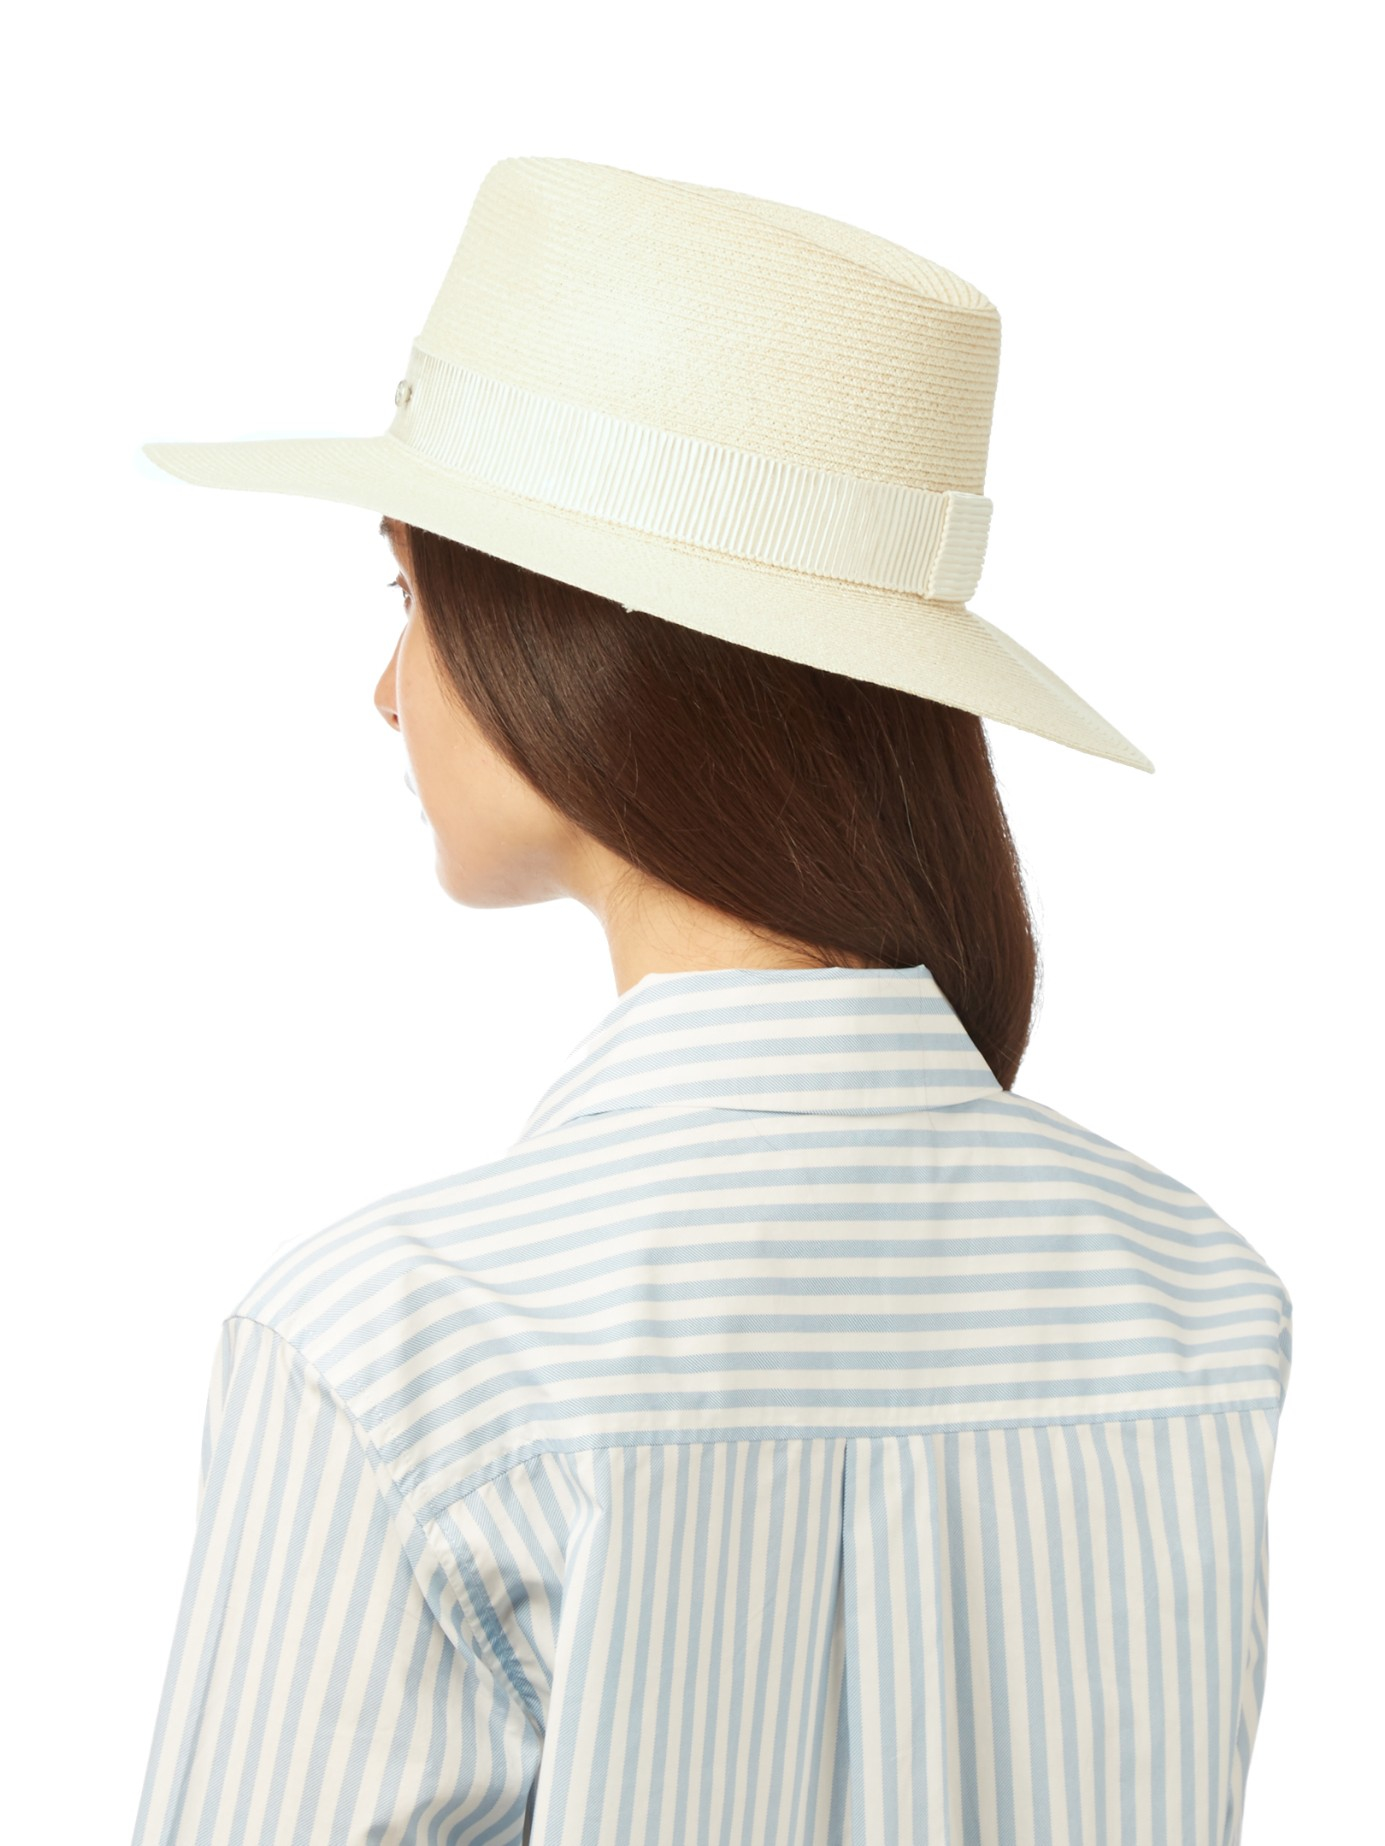 Lyst - Maison Michel Charles Capana Straw Hat in Natural aa659299532